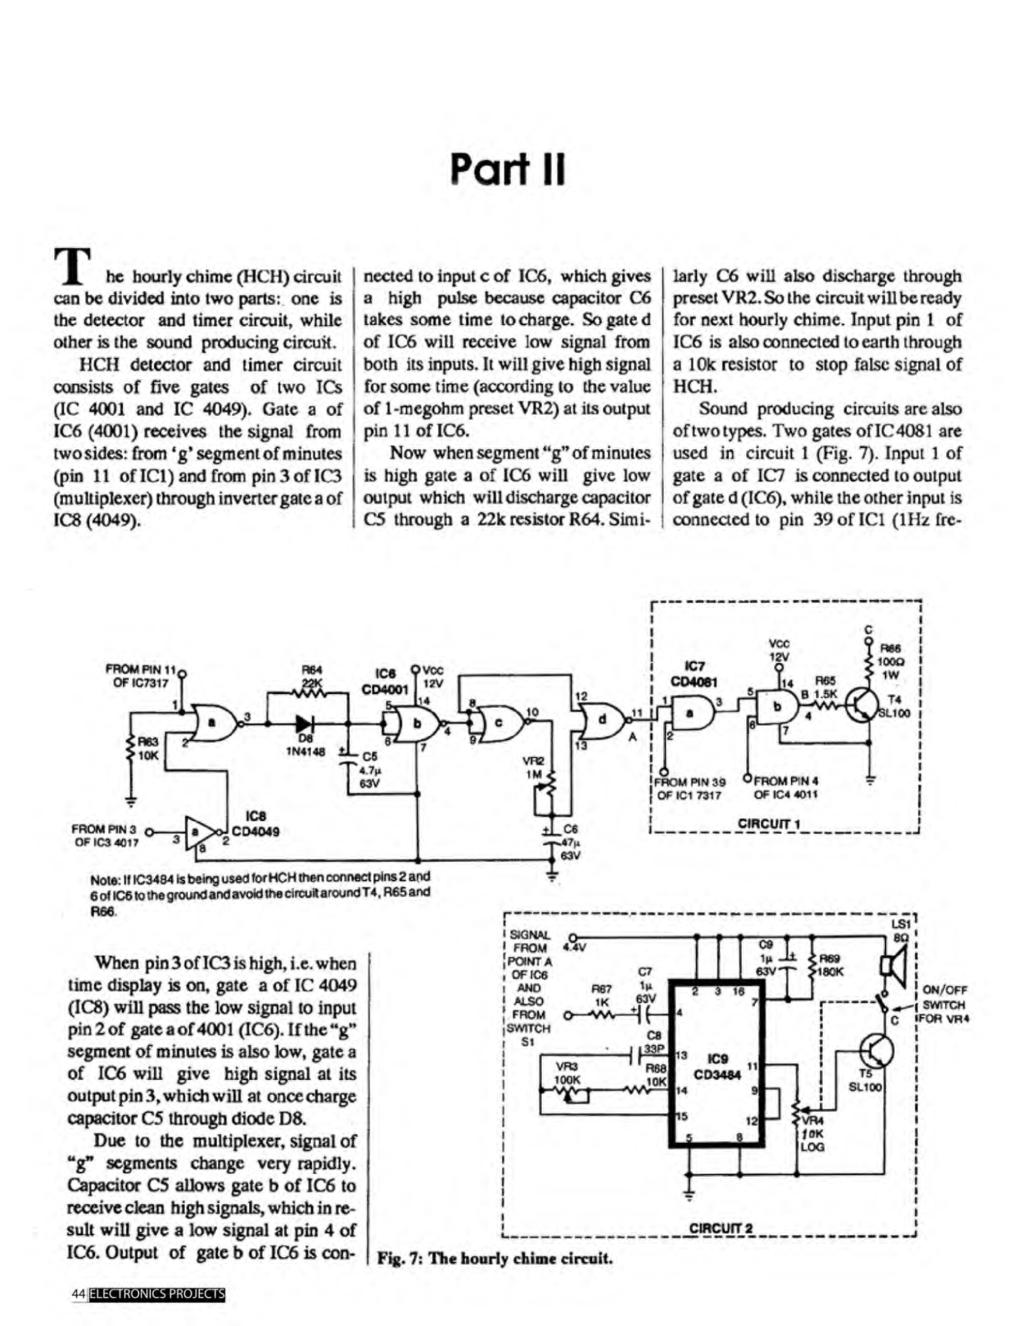 A Compilation Of 102 And Circuit Ideas For Construction Projects Clock Pulse Generator With Cd4049 Diagram I Nectcd Part Ii R 1 He Hourly Chime Hch Can Be